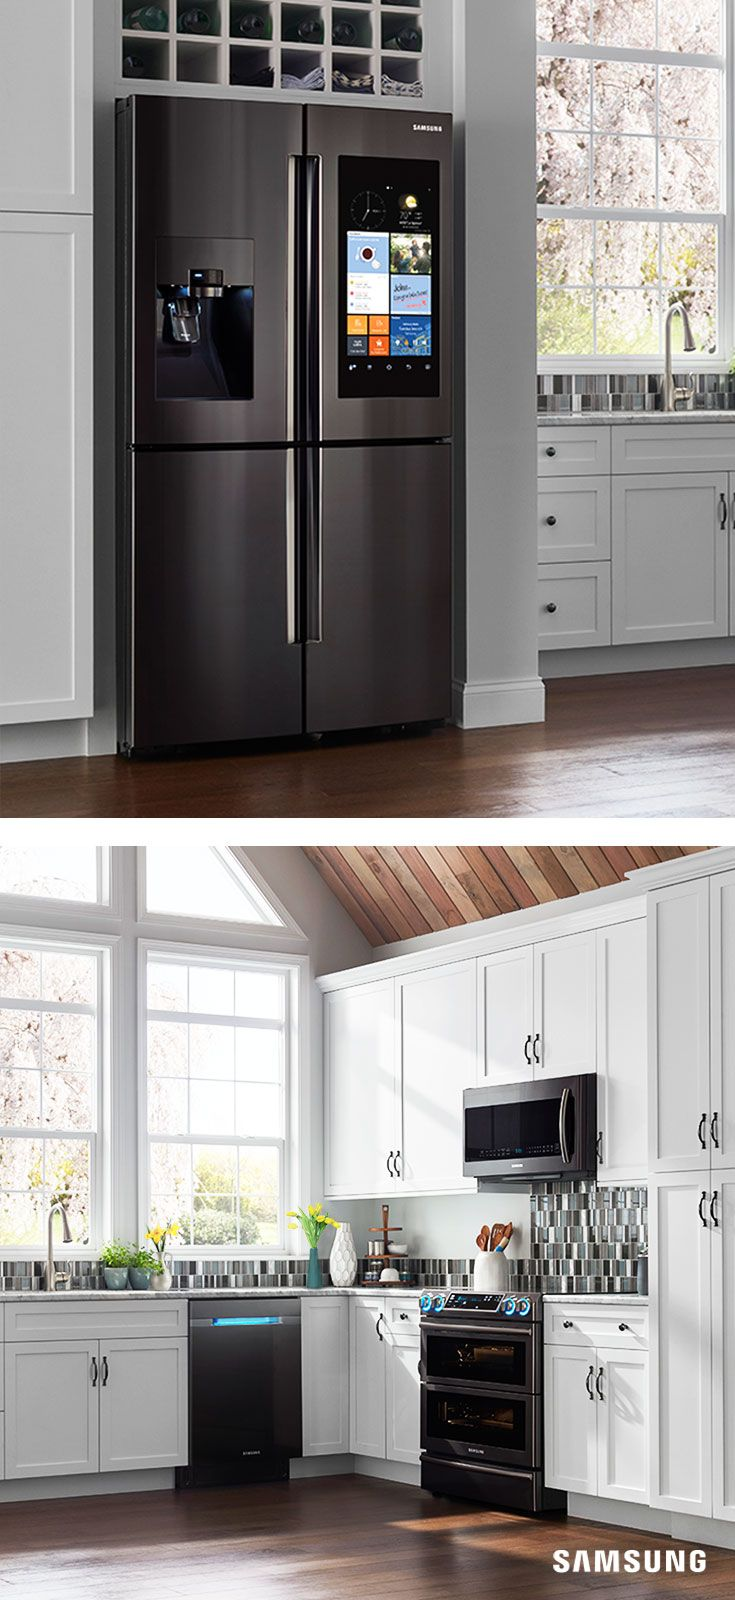 Uncategorized Black Kitchen Cabinets With Stainless Steel Appliances best 25 black stainless steel ideas on pinterest counter depth 4 door refrigerator with family appliancesstainless